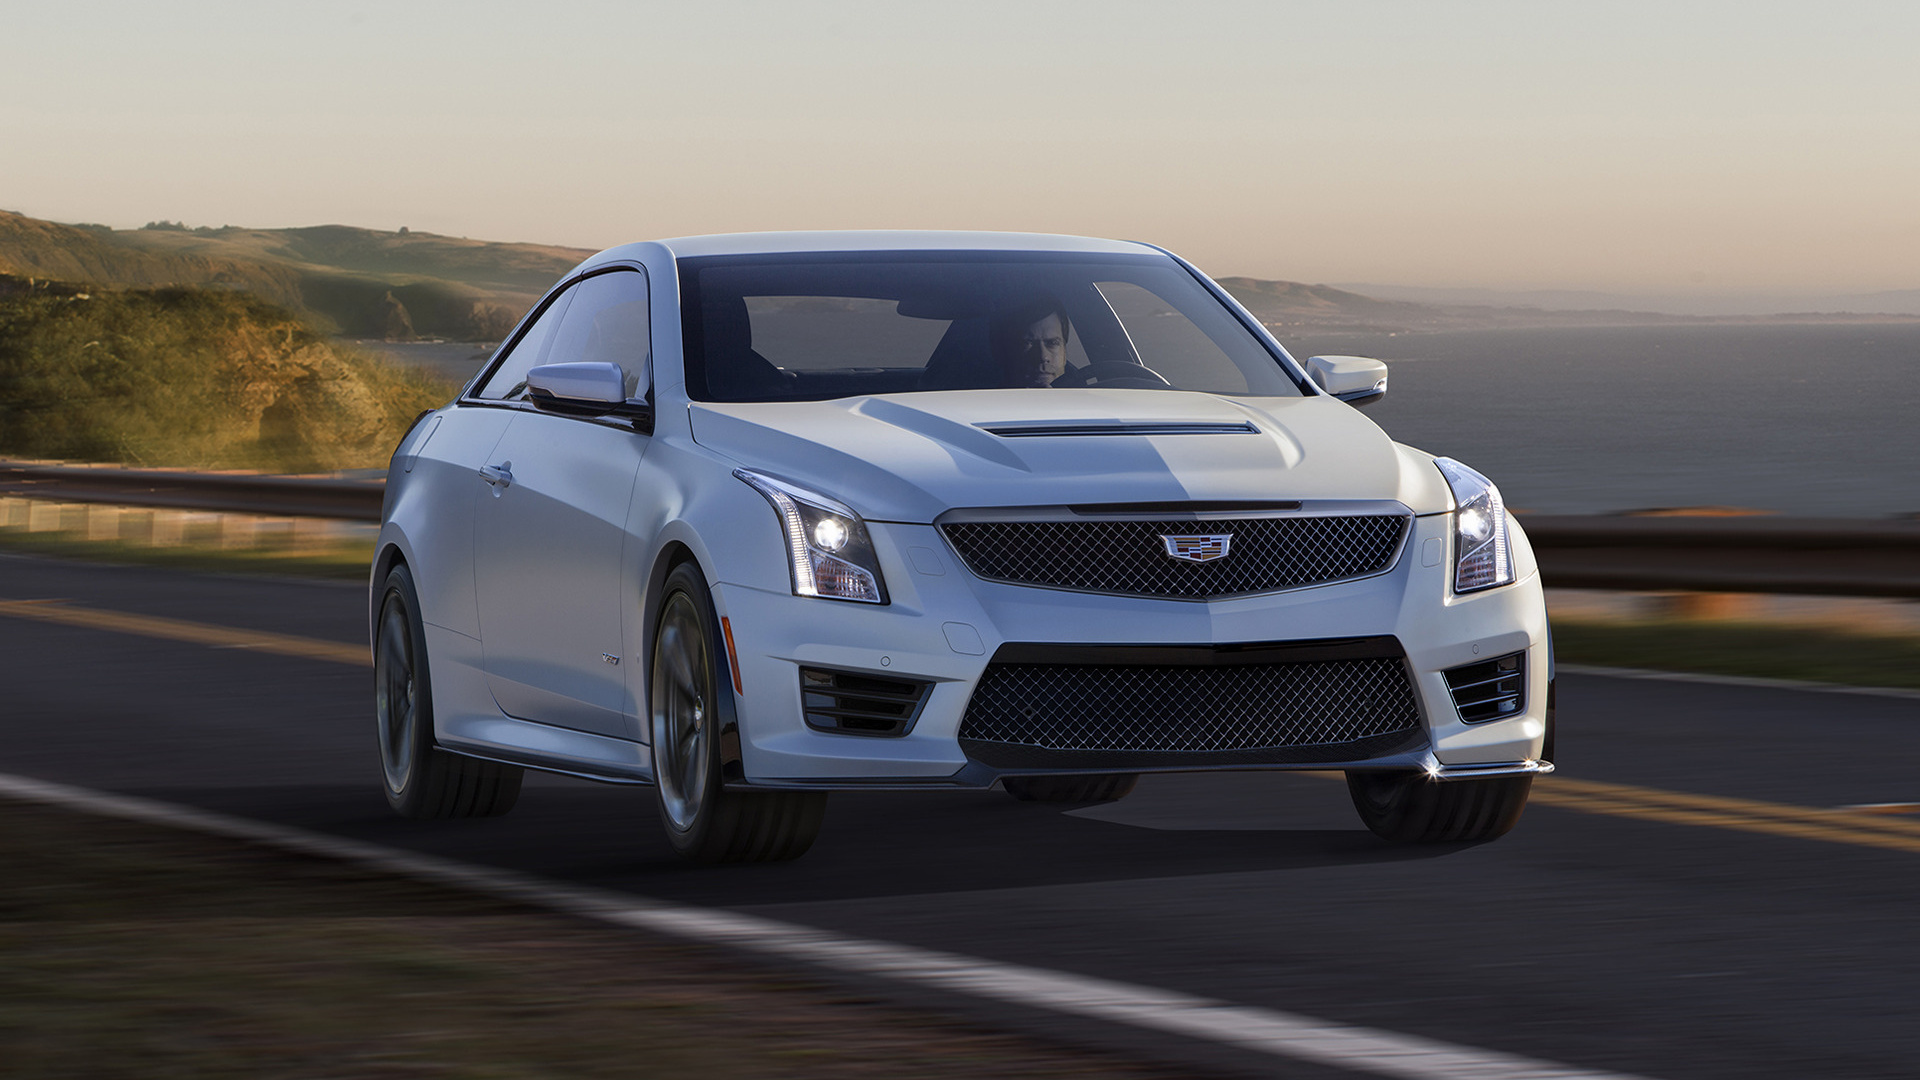 cadillac ats v coupe 2016 wallpapers and hd images car pixel. Black Bedroom Furniture Sets. Home Design Ideas